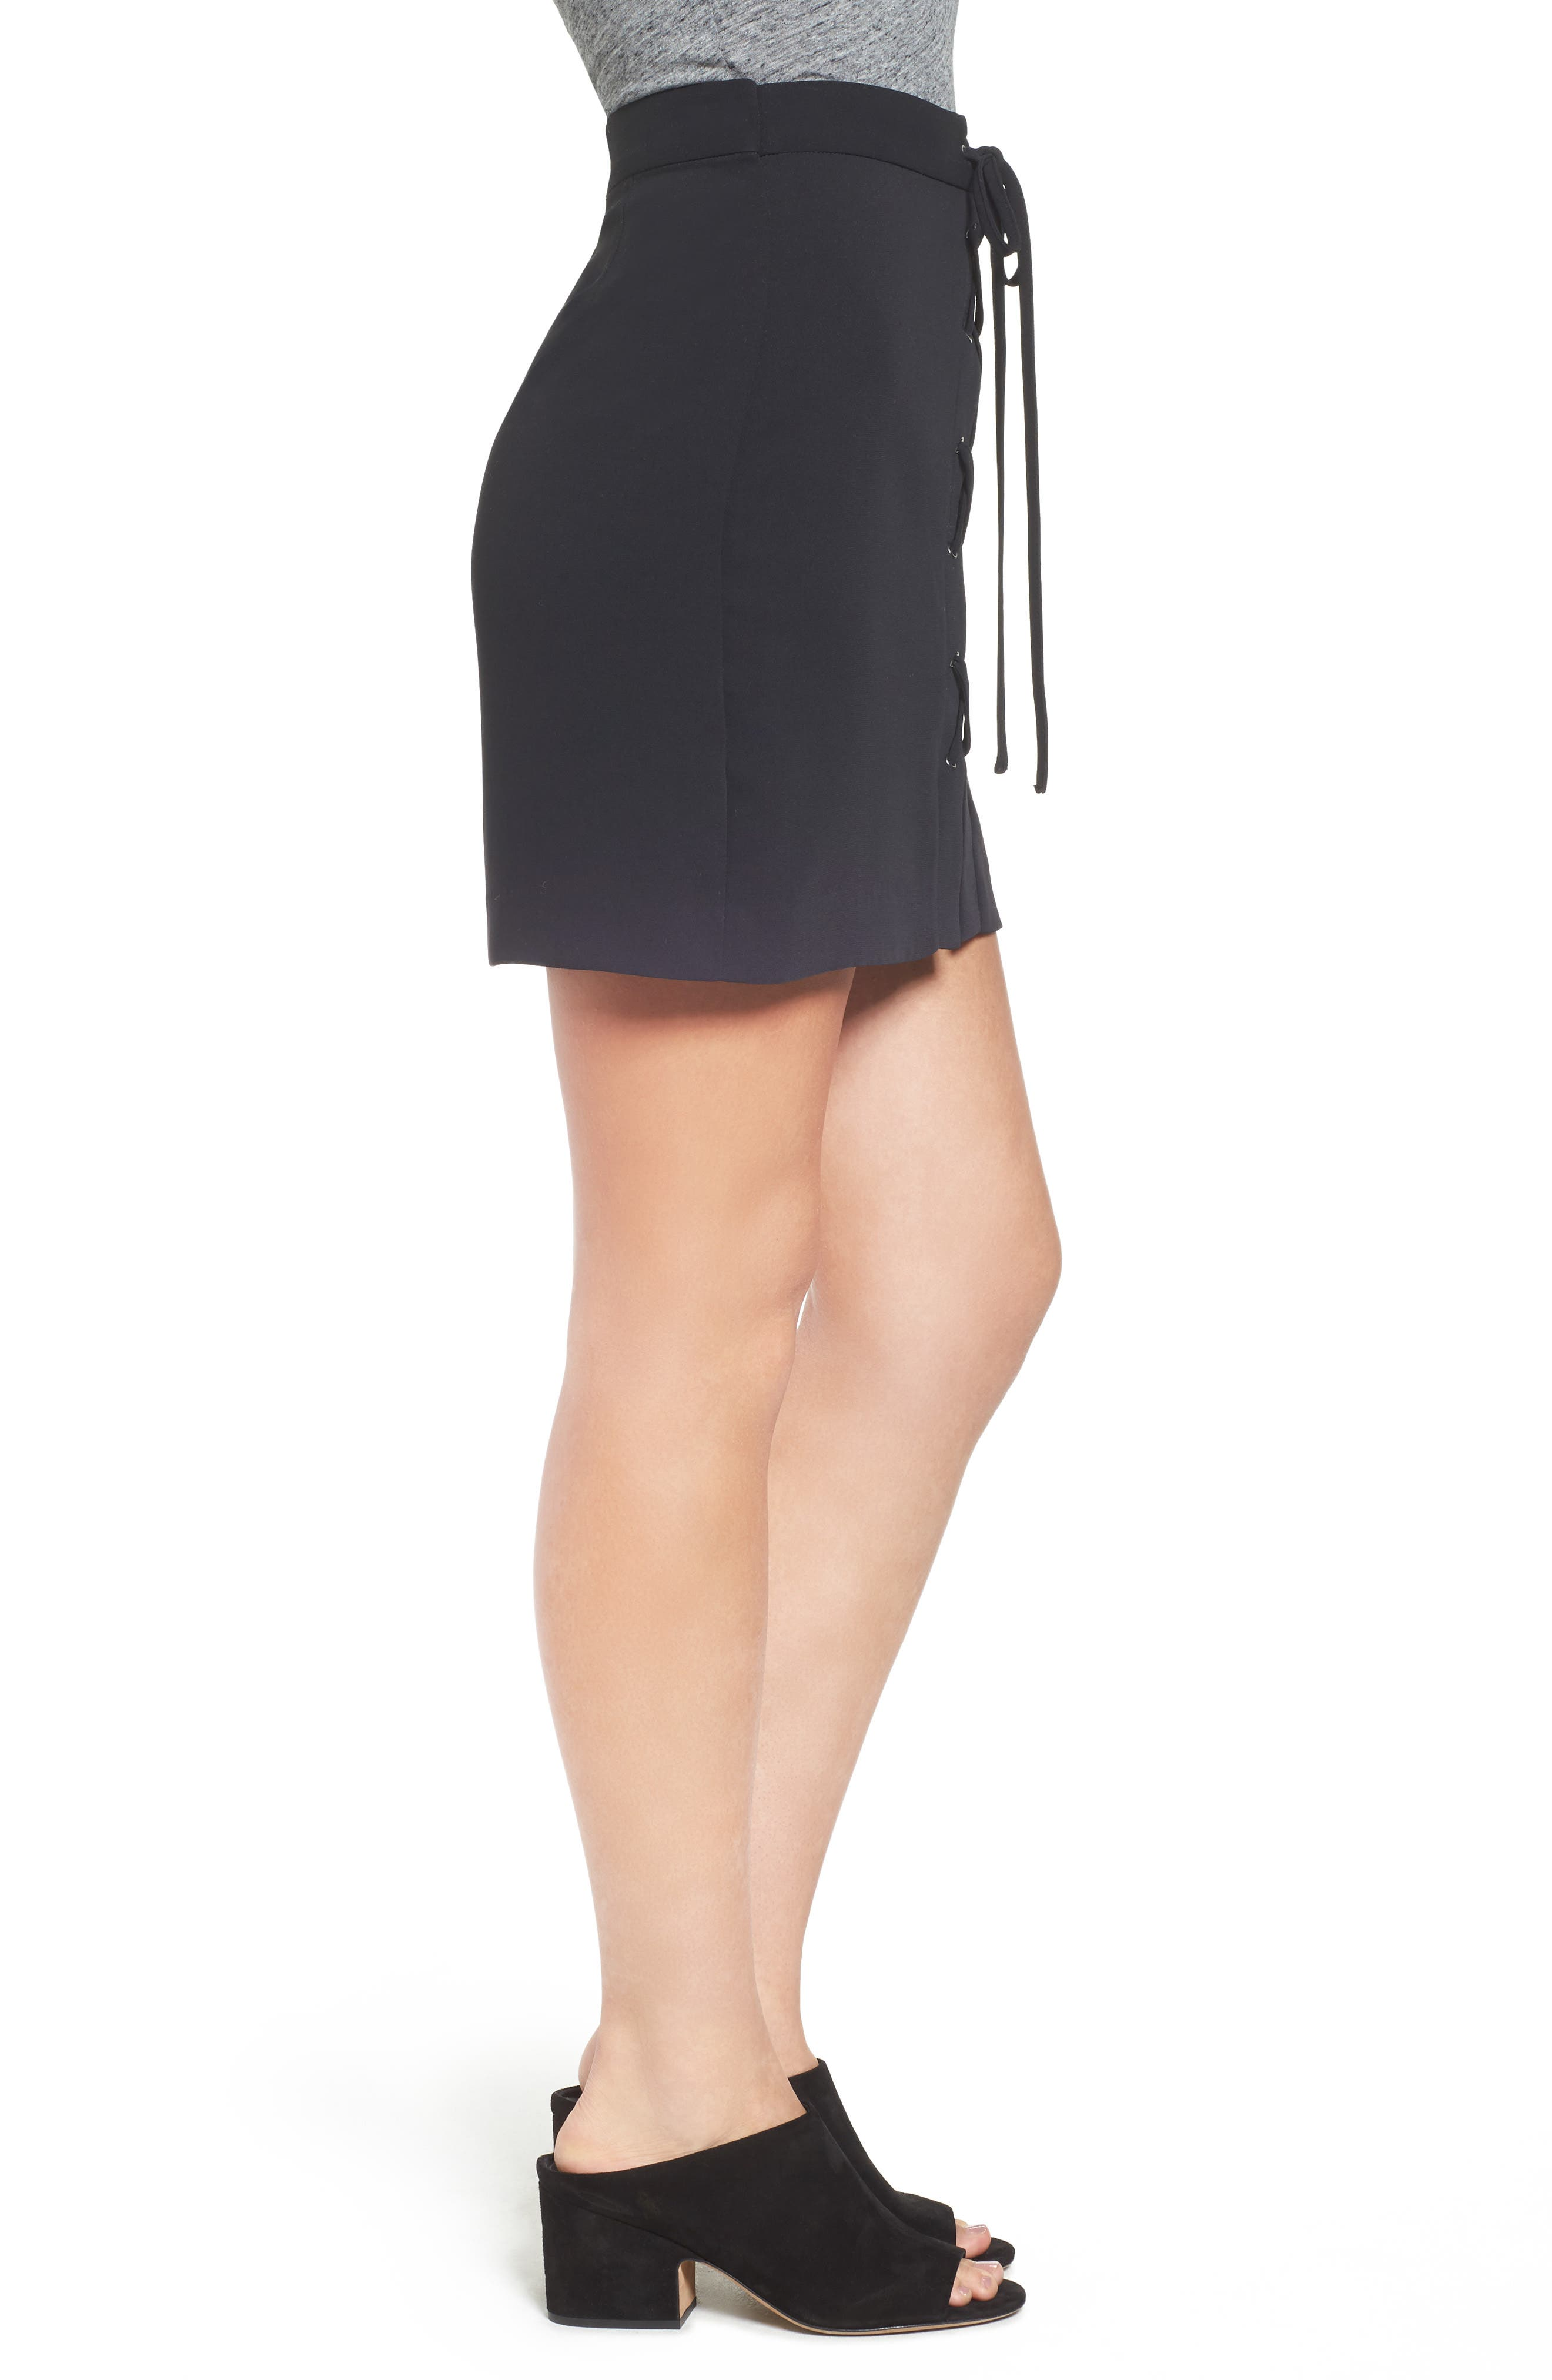 MADEWELL,                             Lace-Up Skirt,                             Alternate thumbnail 3, color,                             001